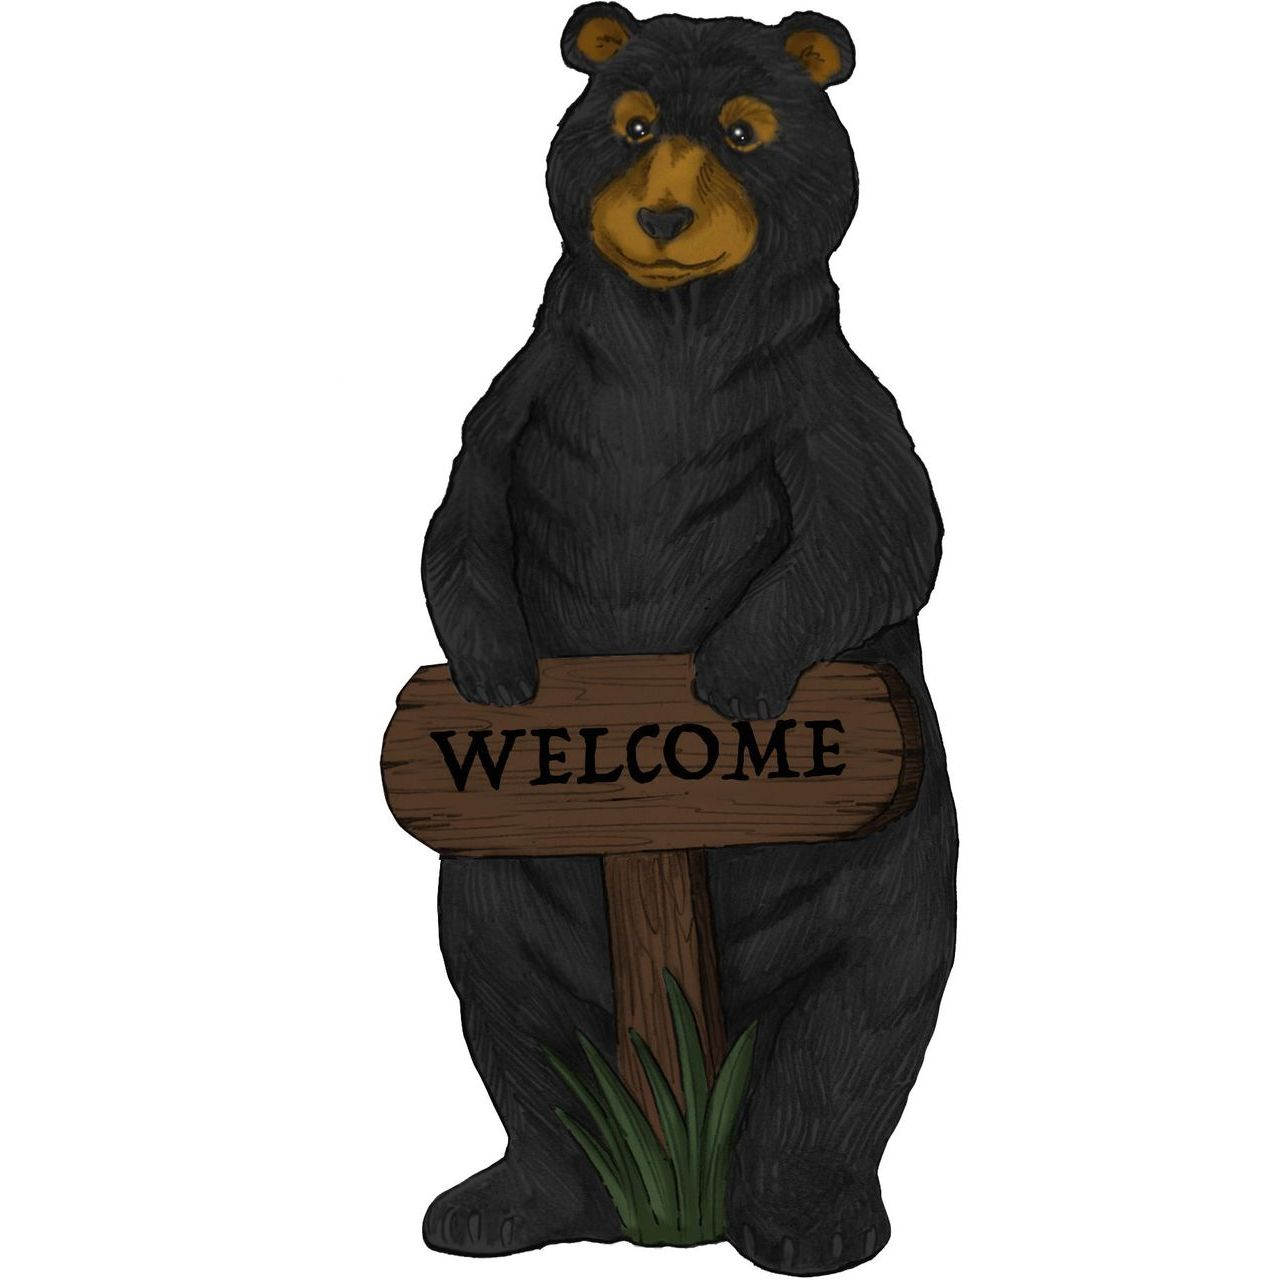 Alpine ZEN732 Standing Black Bear Garden Statue with Welcome Sign